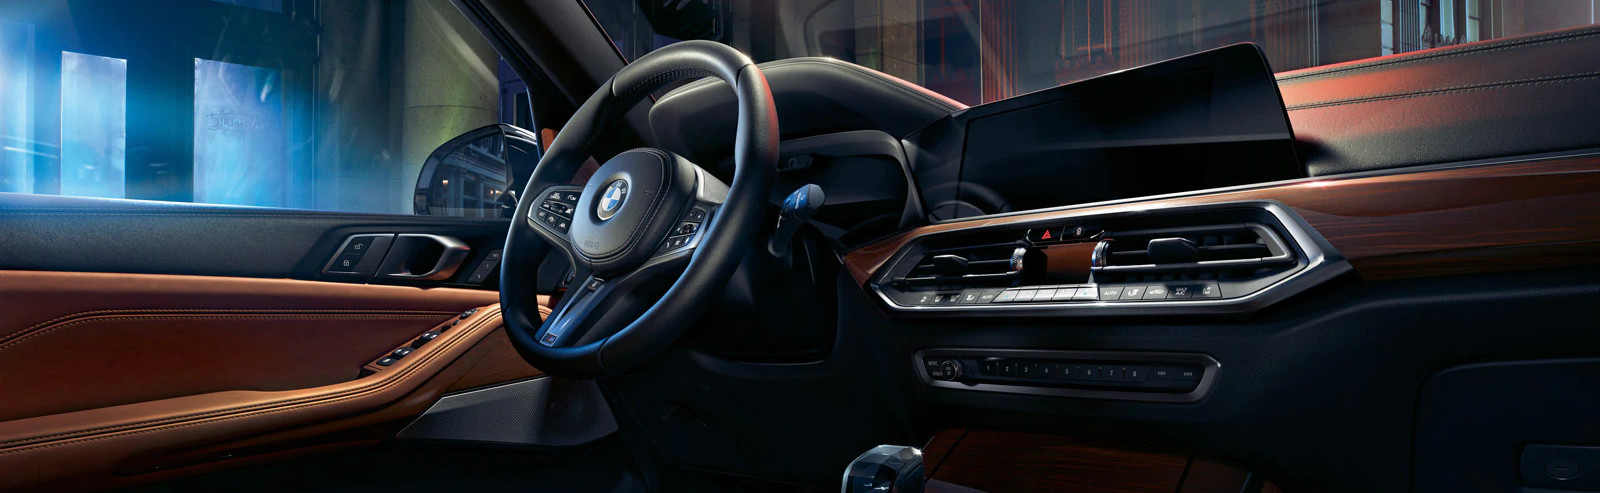 Dashboard of the 2020 BMW X5